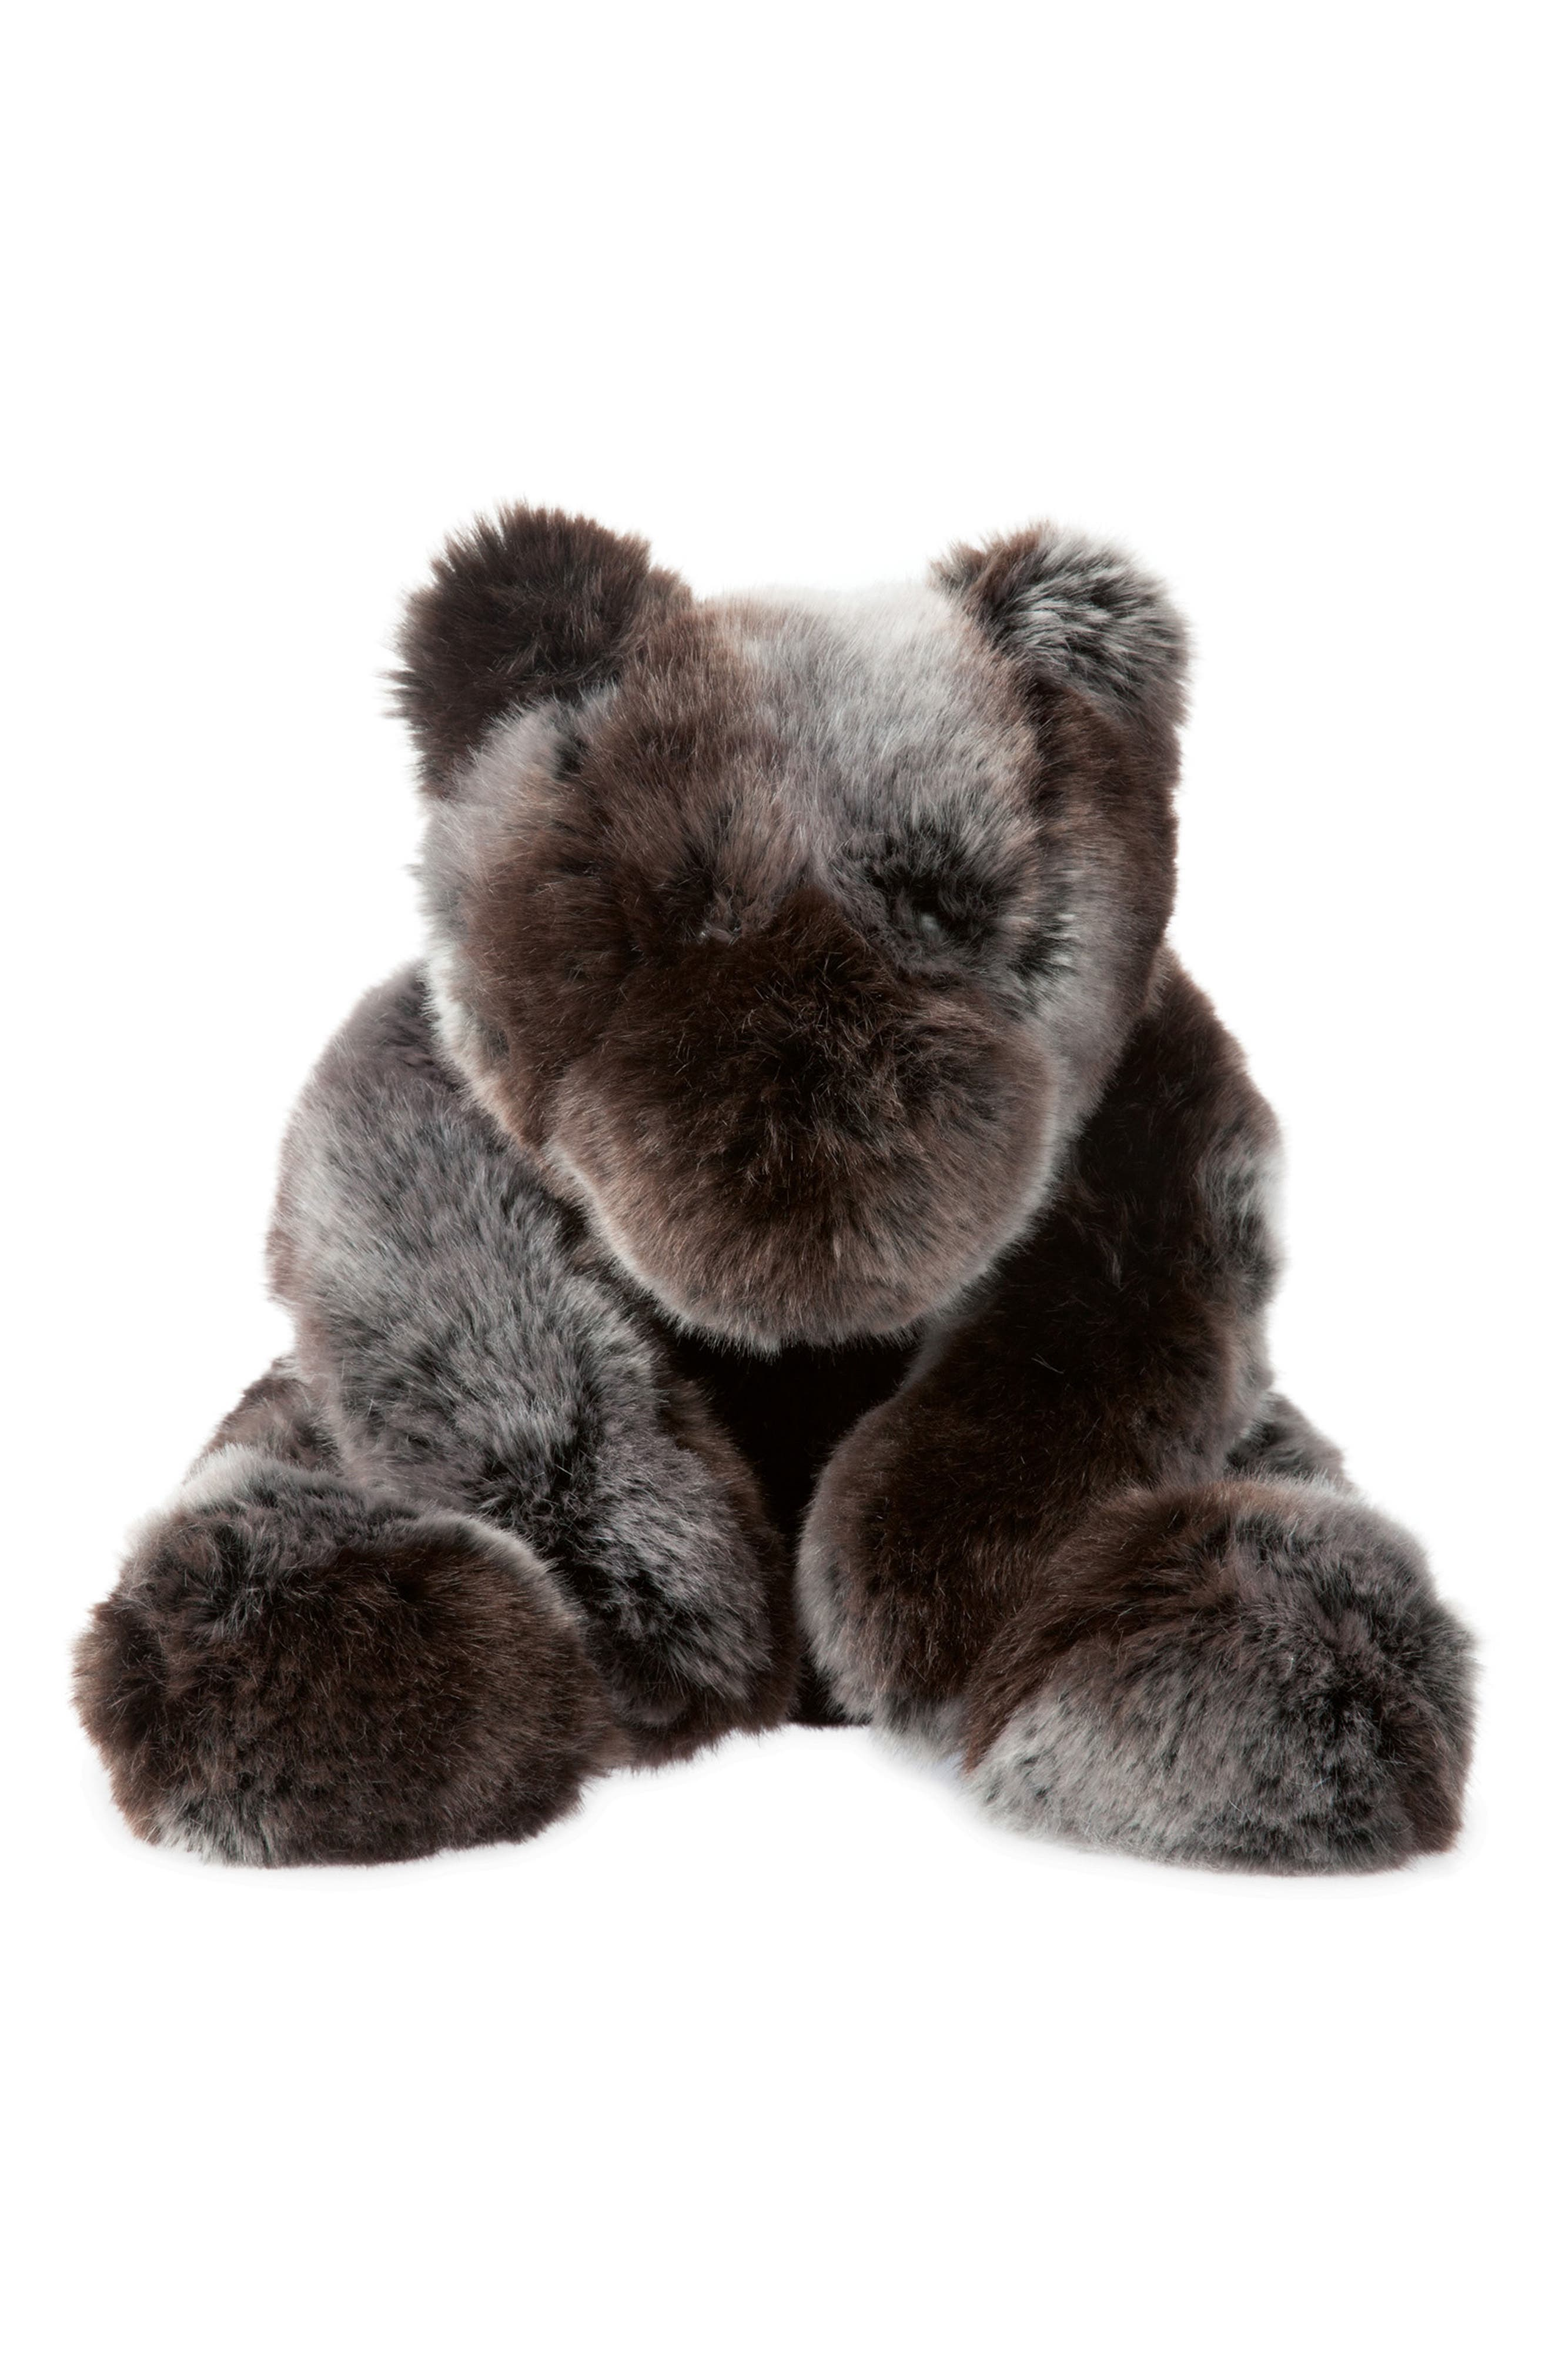 Luxe Sable Bear Stuffed Animal,                         Main,                         color, 200